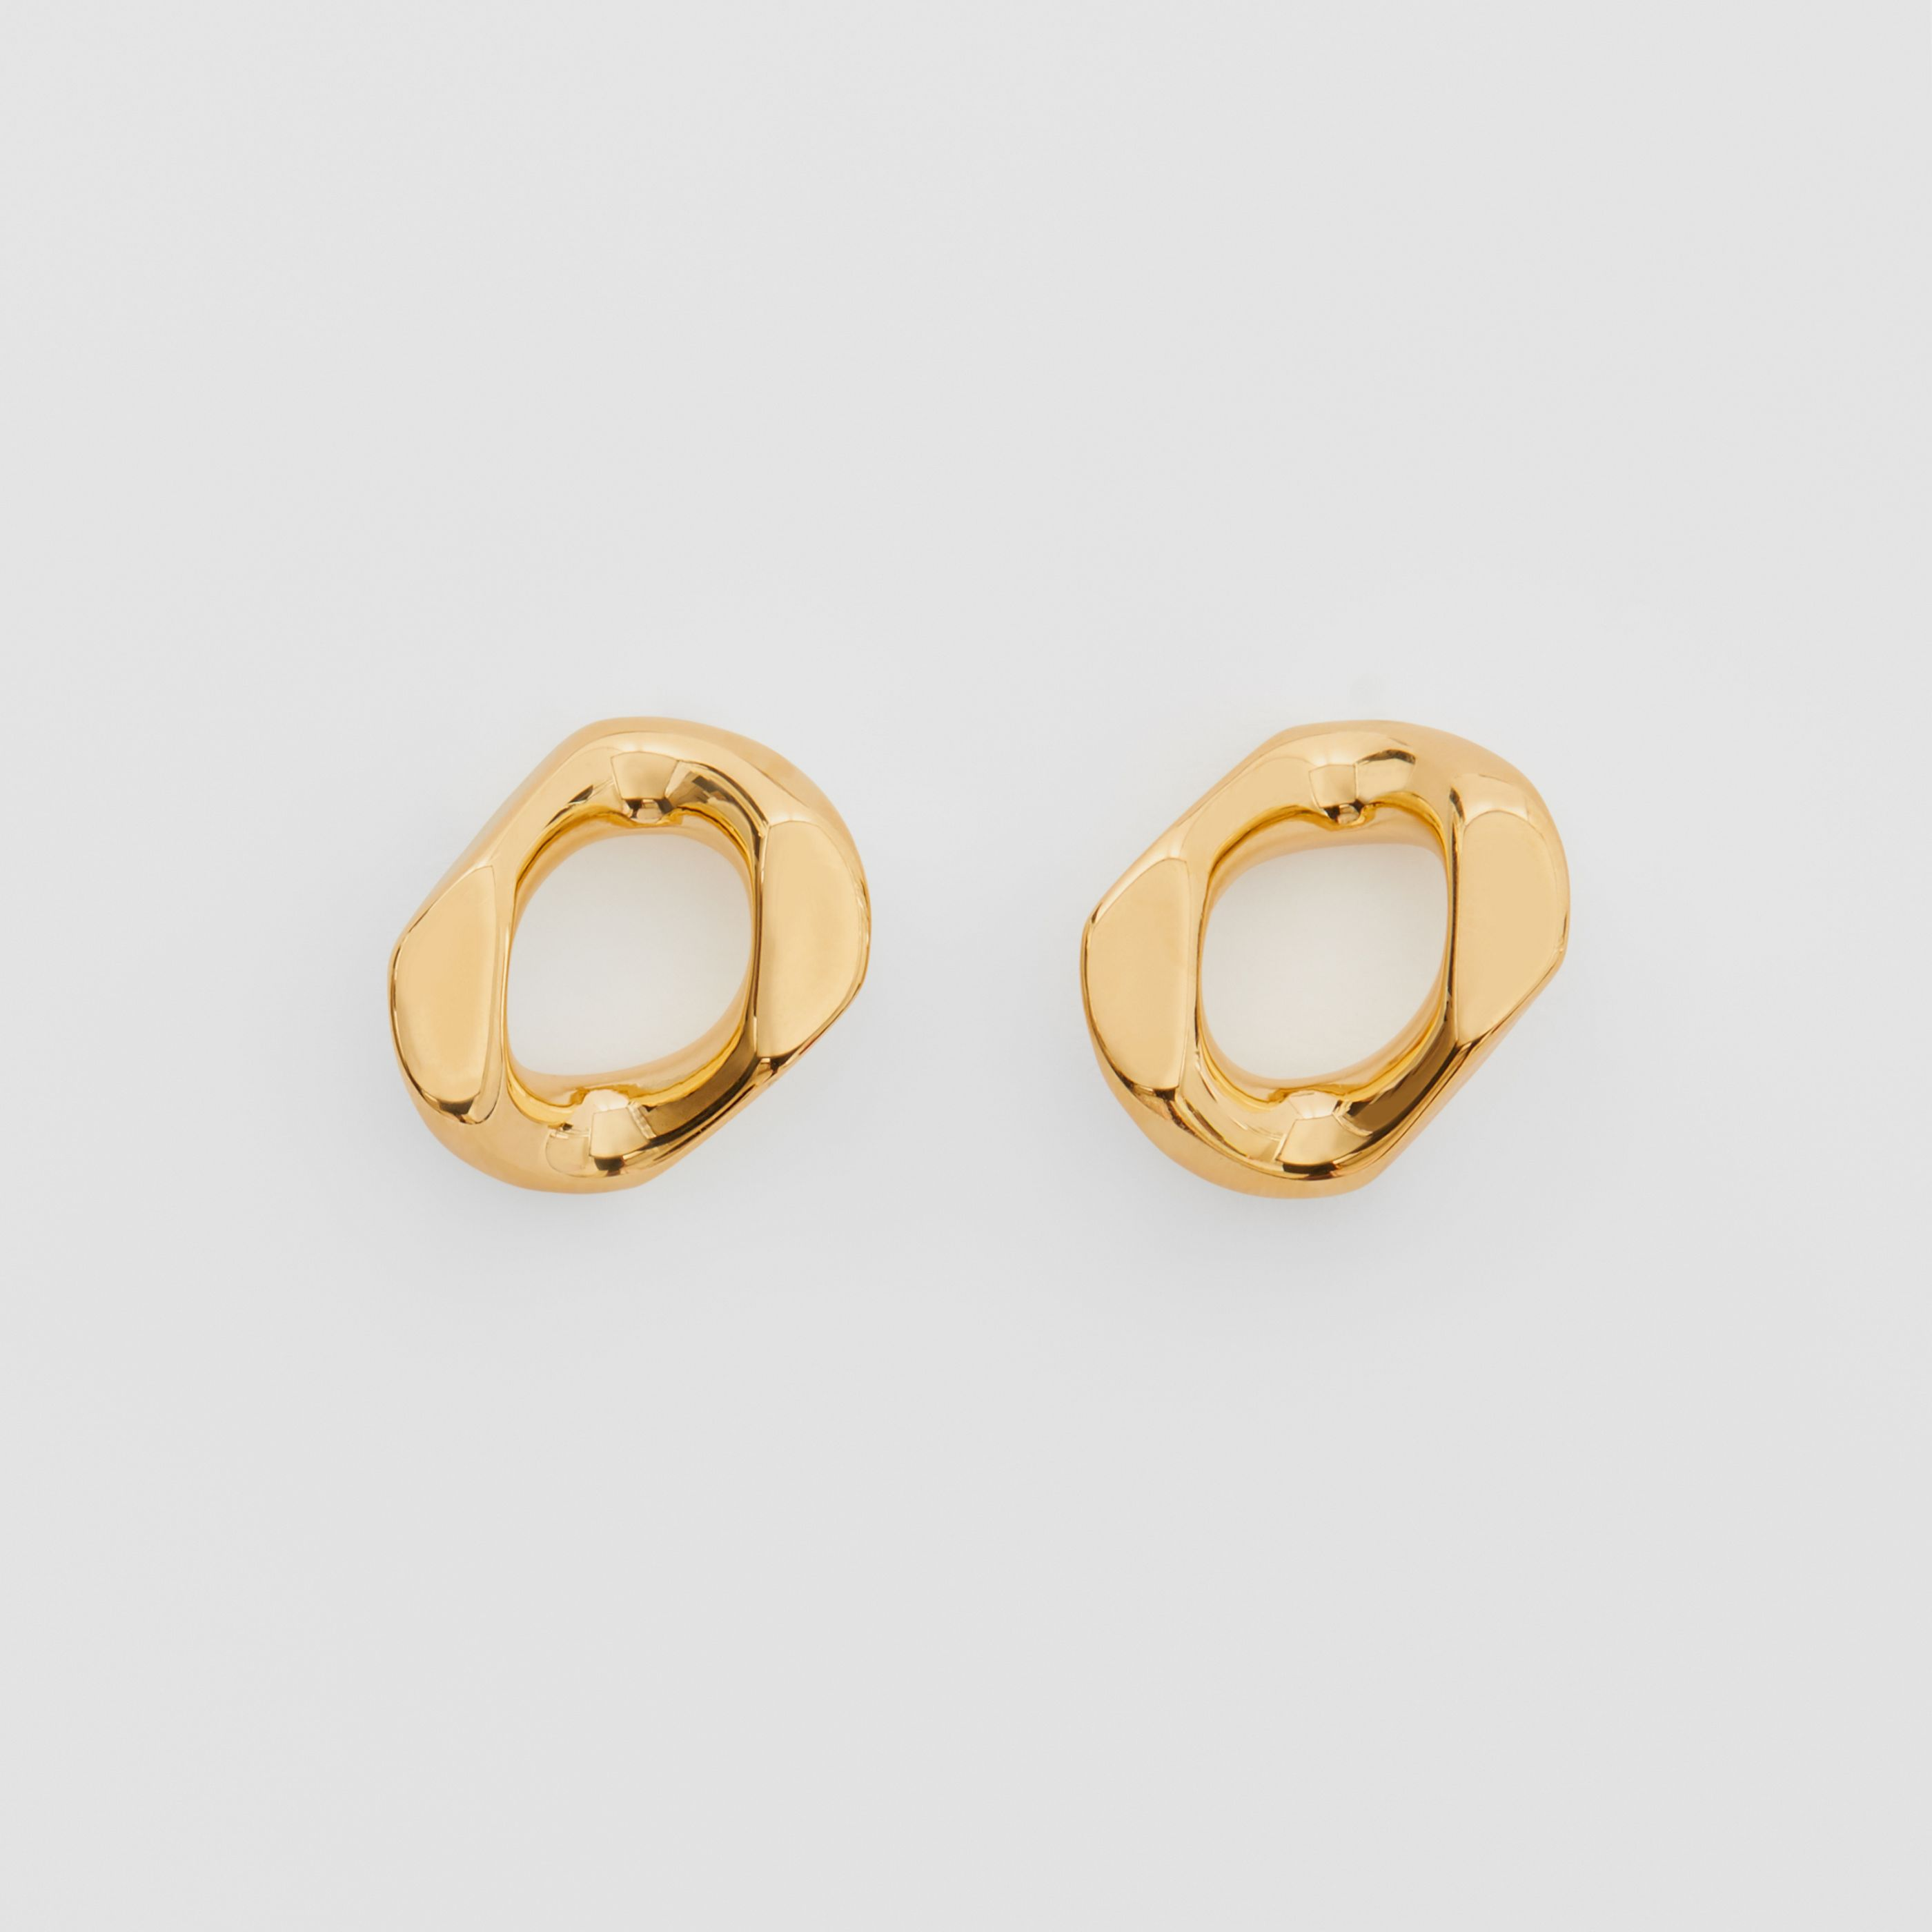 gold plated earrings 2021